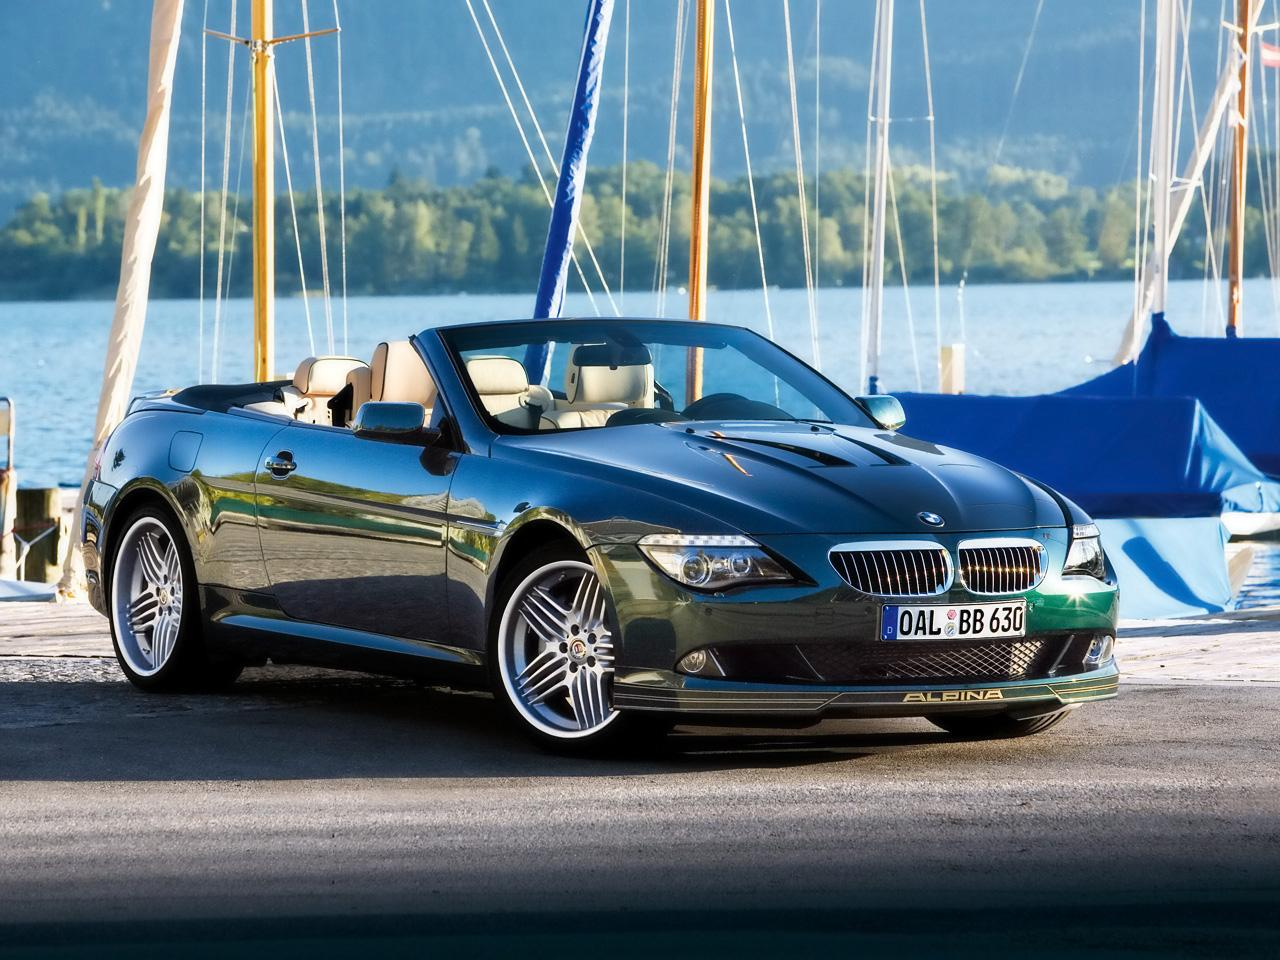 Bmw Z3 2011 Review Amazing Pictures And Images Look At The Car